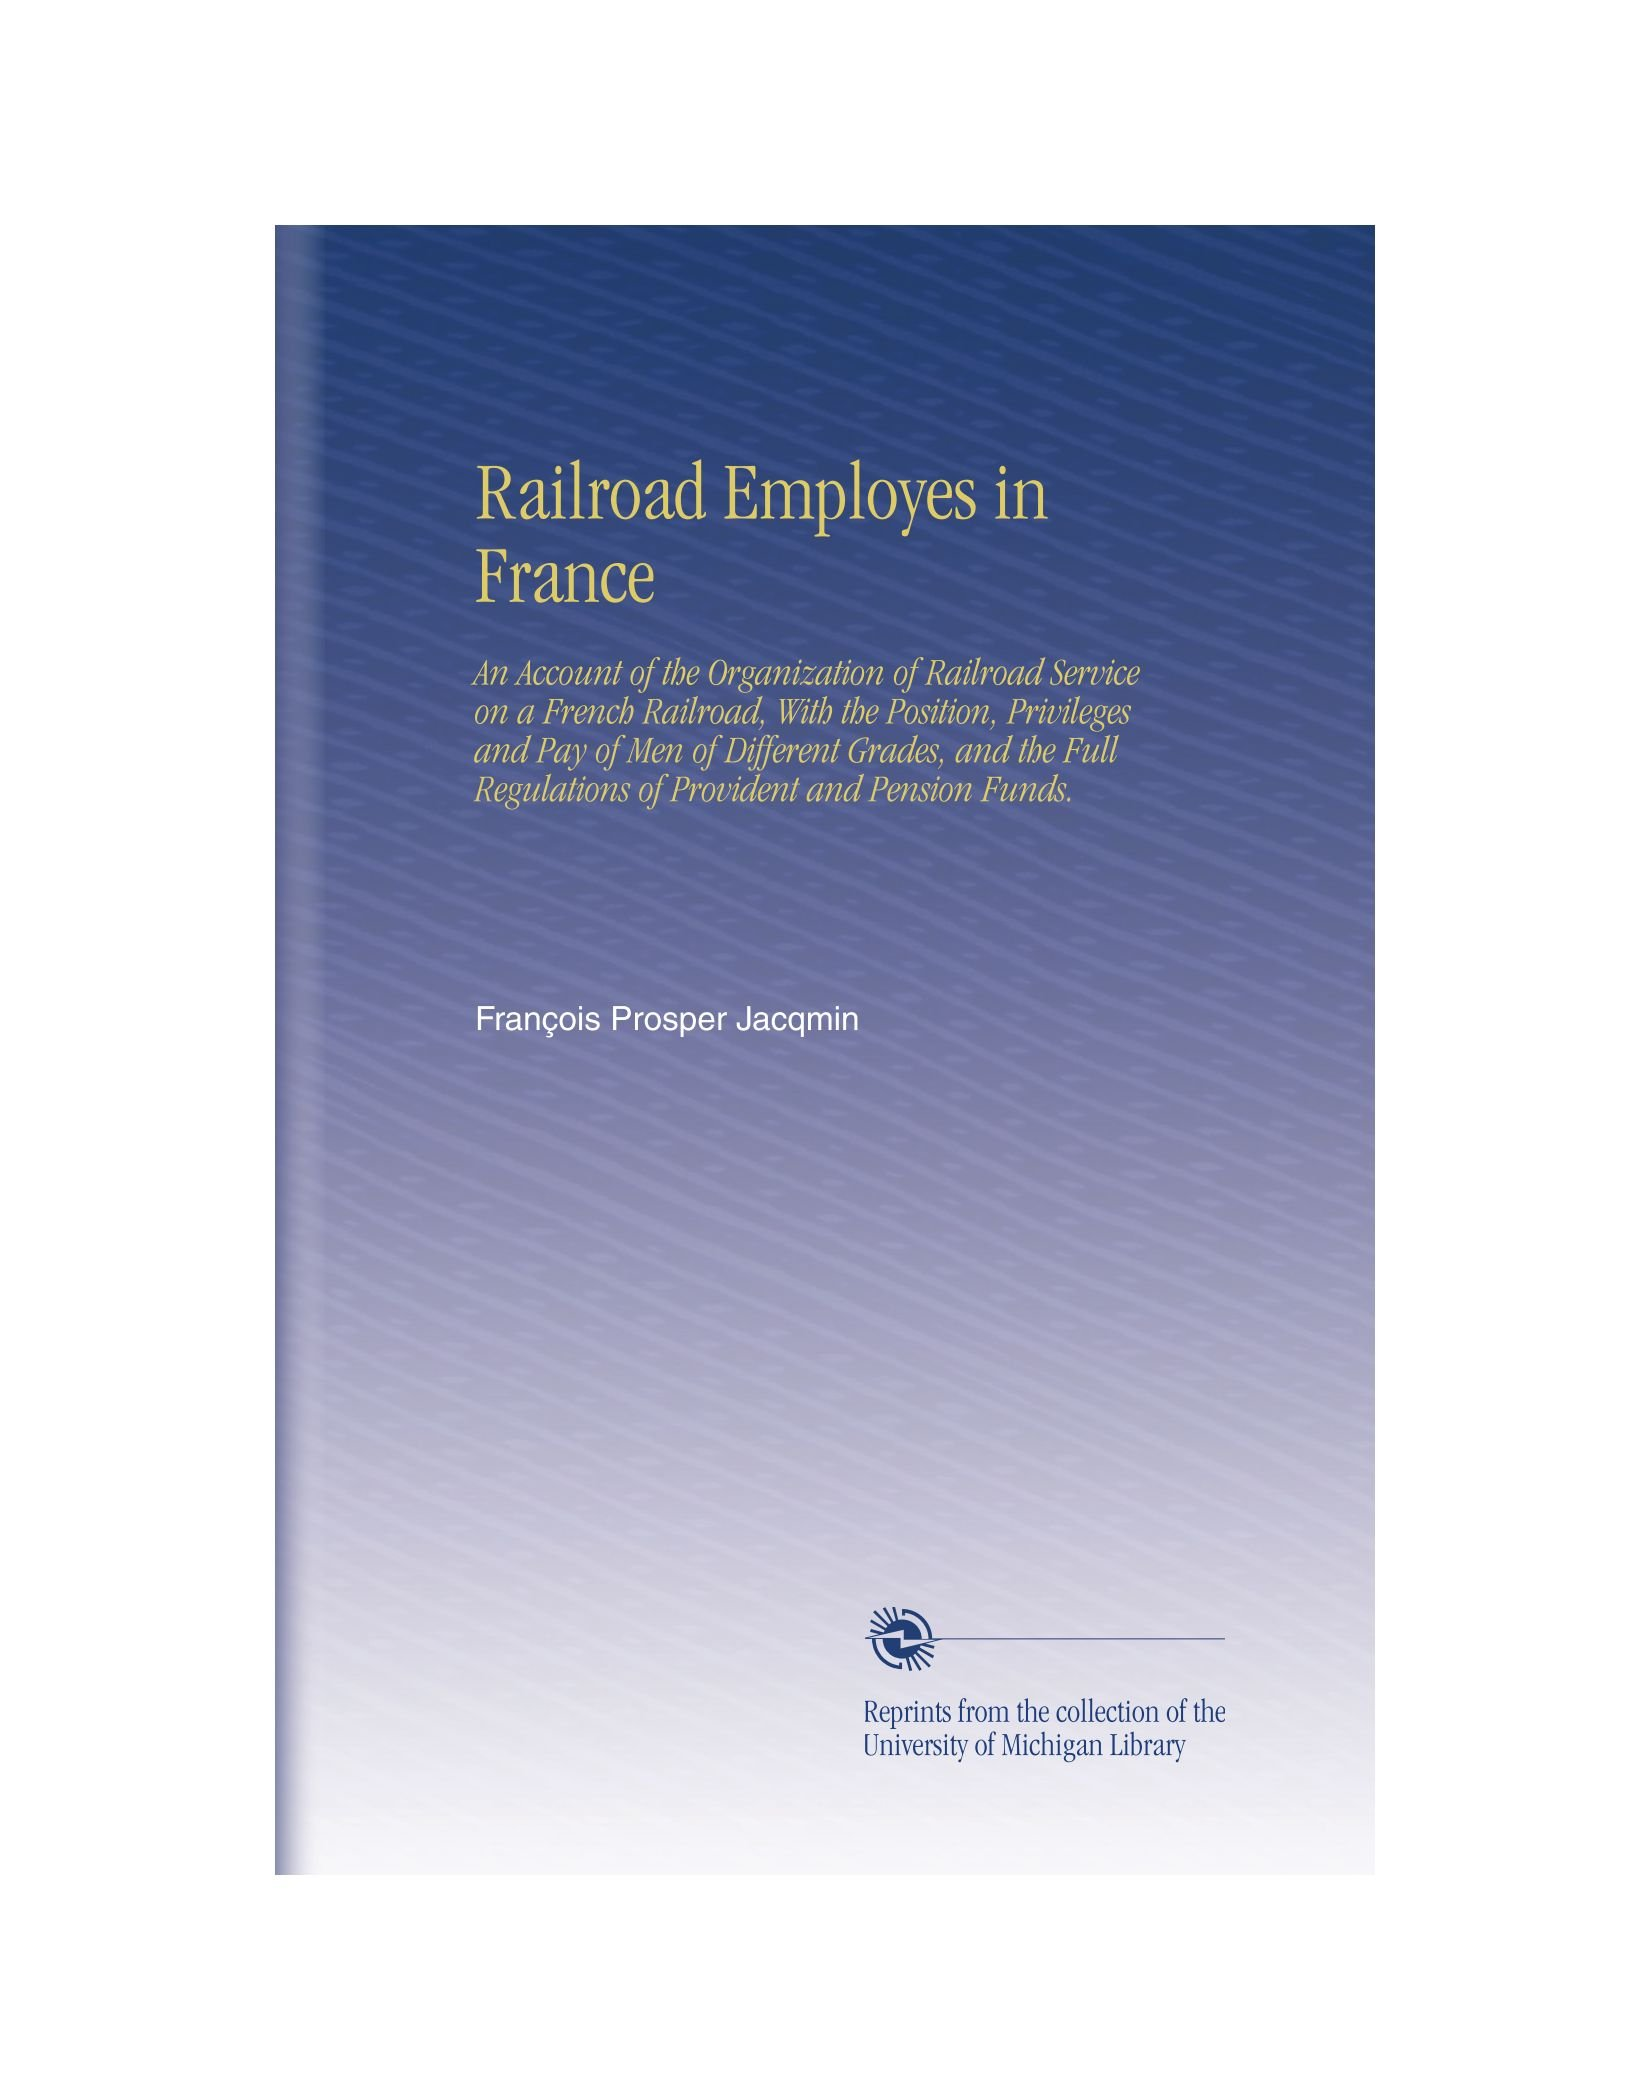 Railroad Employes in France: An Account of the Organization of Railroad Service on a French Railroad, With the Position, Privileges and Pay of Men of ... Regulations of Provident and Pension Funds. pdf epub